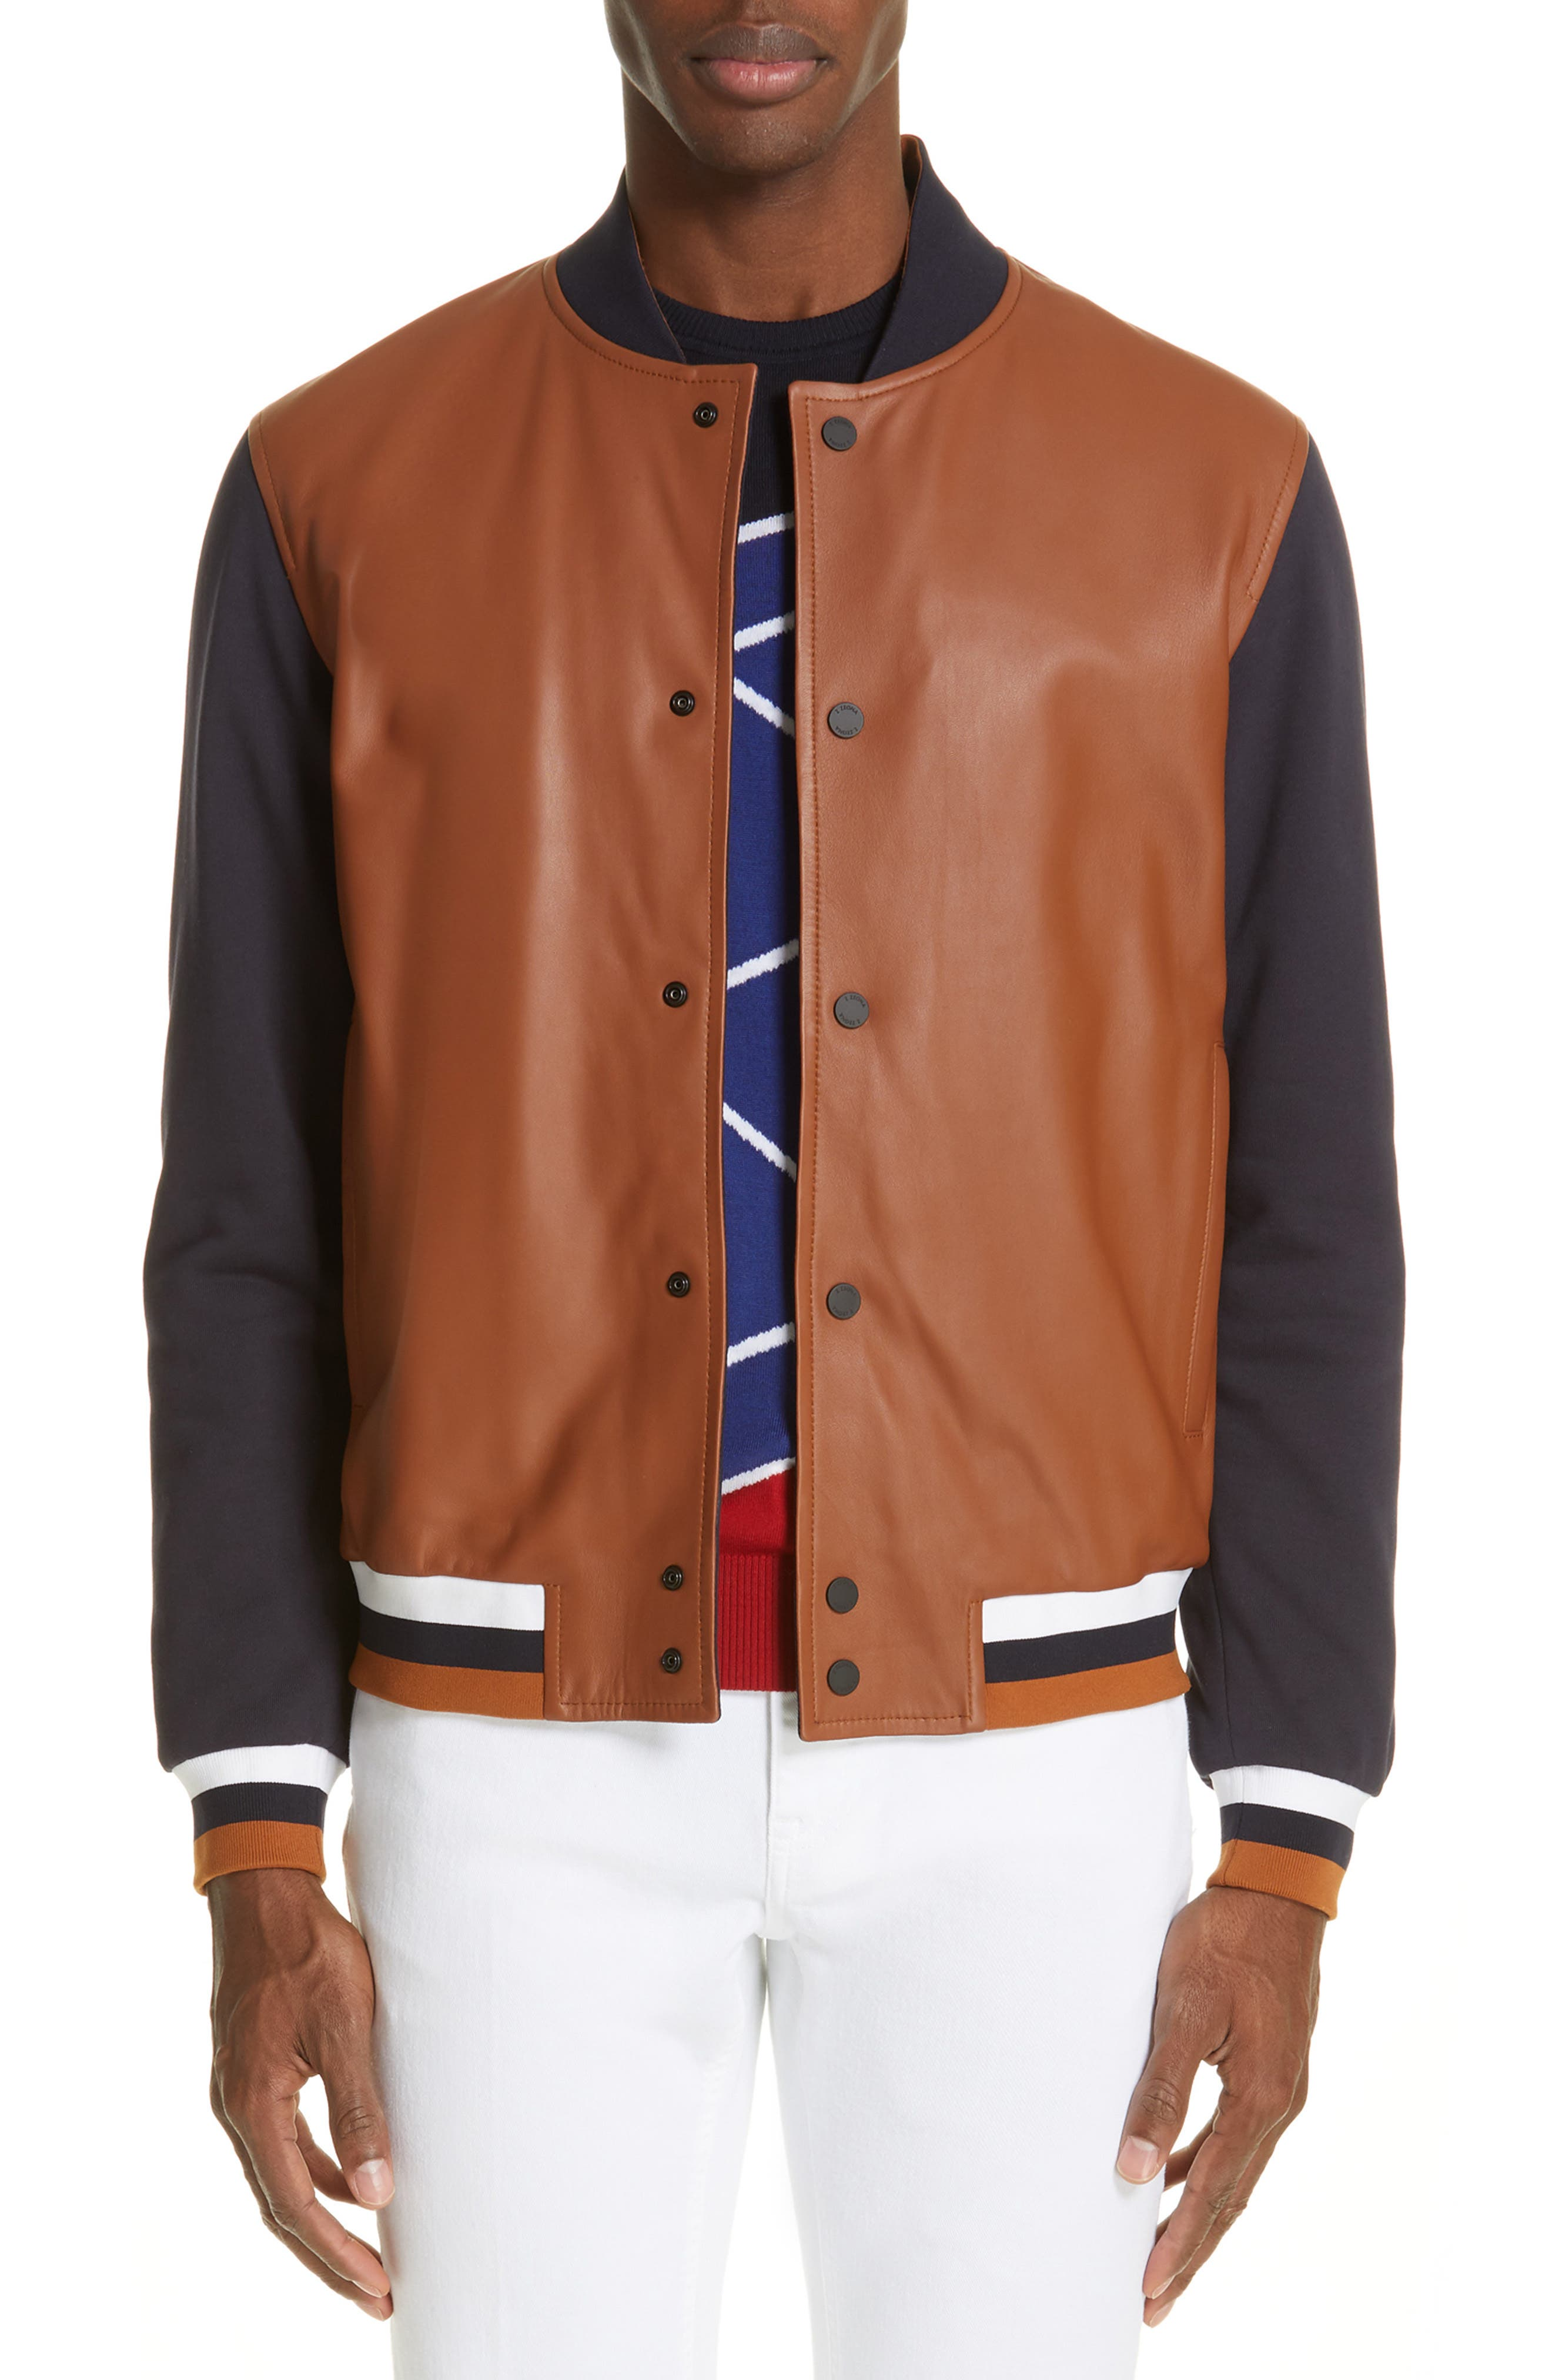 Z ZEGNA, Contrast Leather Bomber Jacket, Main thumbnail 1, color, NAVY/ BROWN